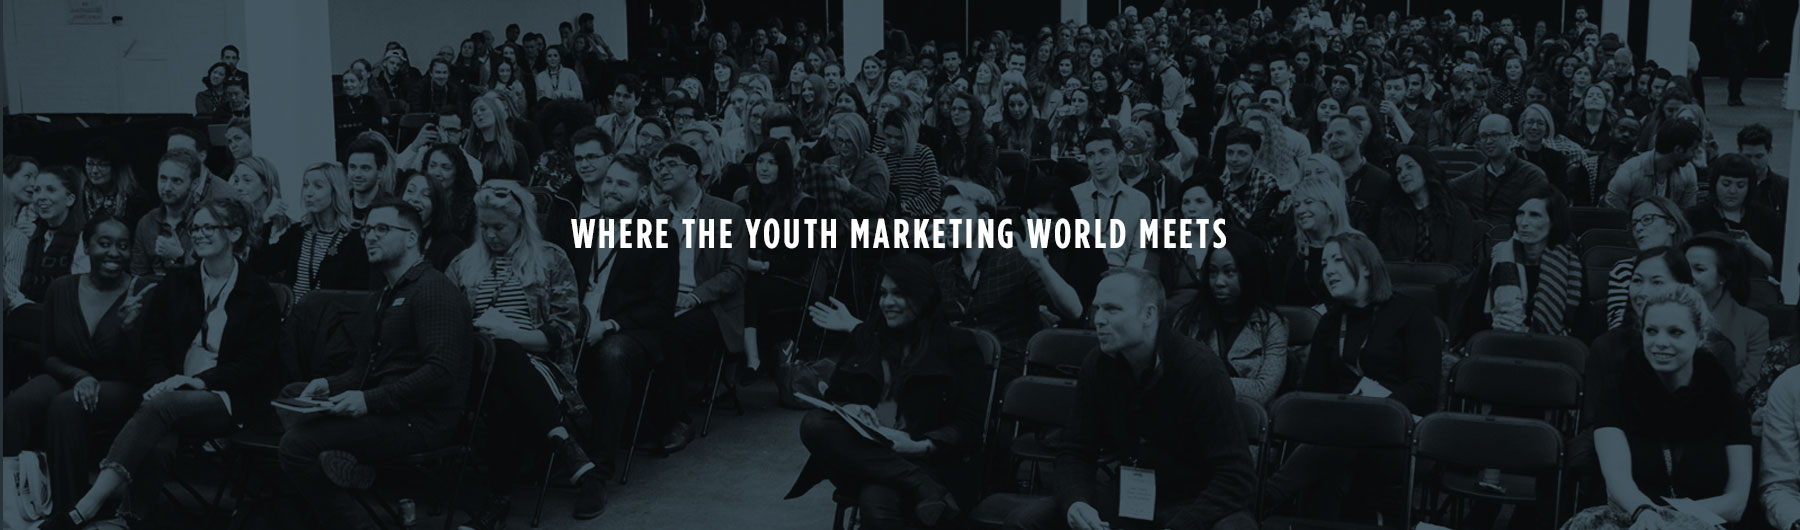 Youth Marketing Strategy LDN 2018